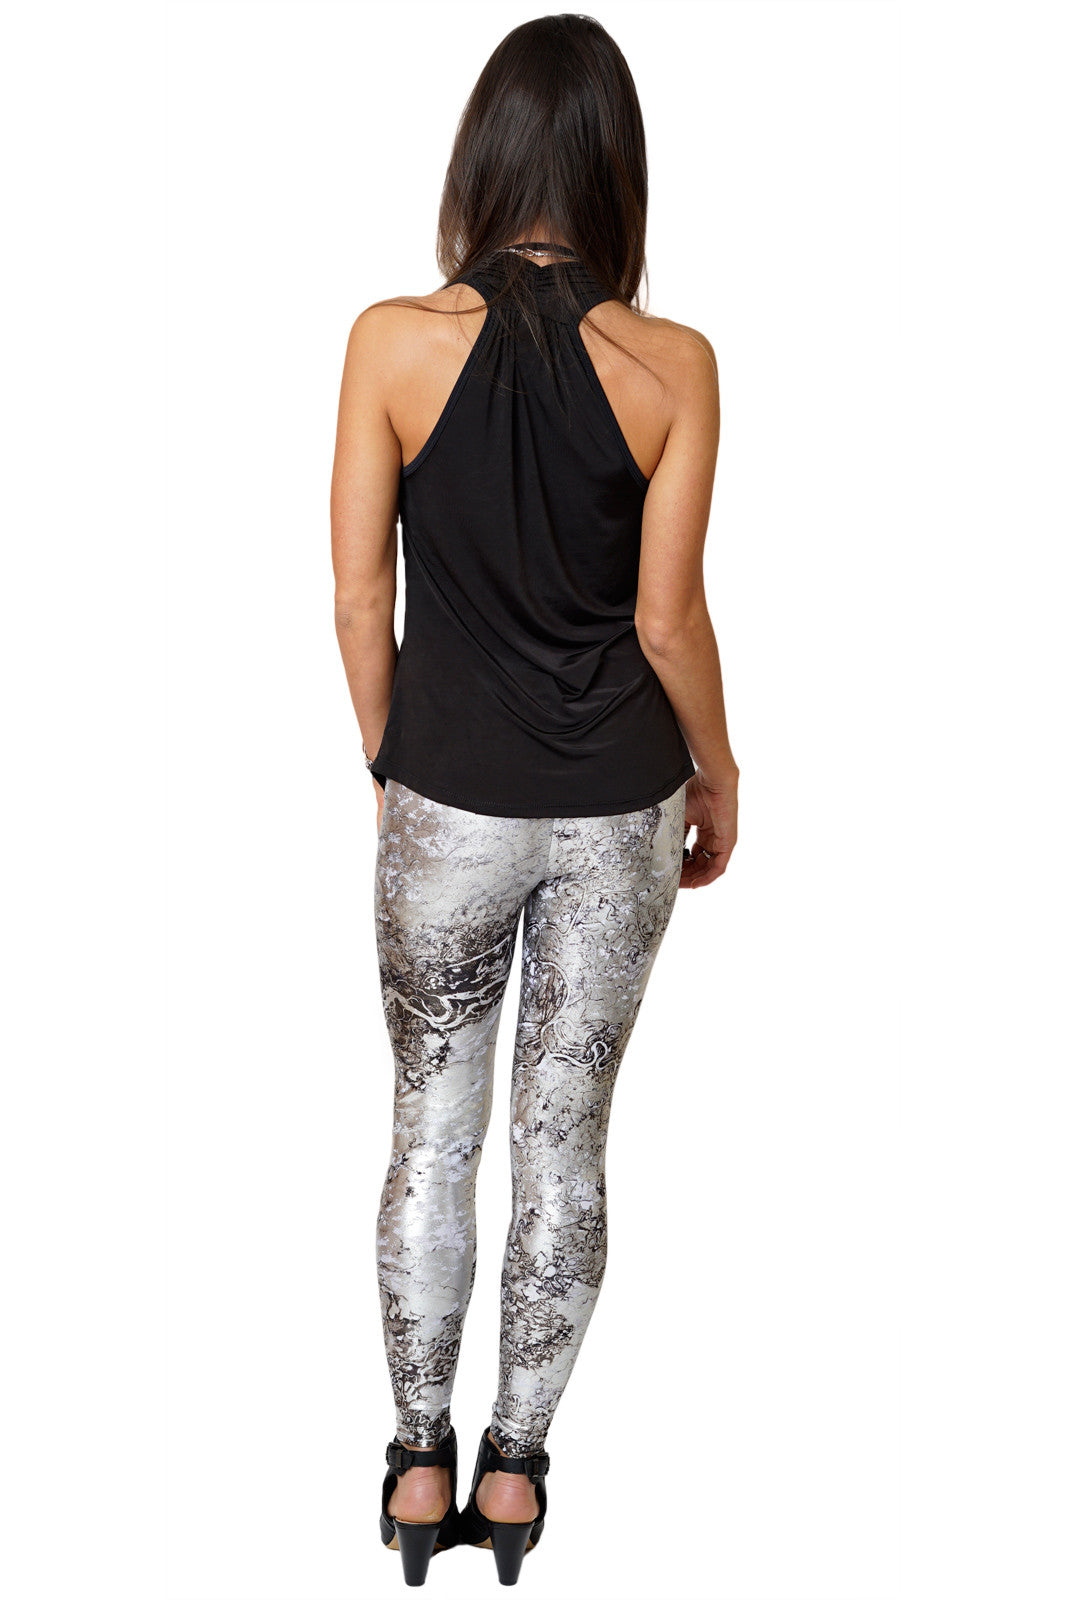 Leggings-Nature Inspired Yoga Fashion-Mayn River